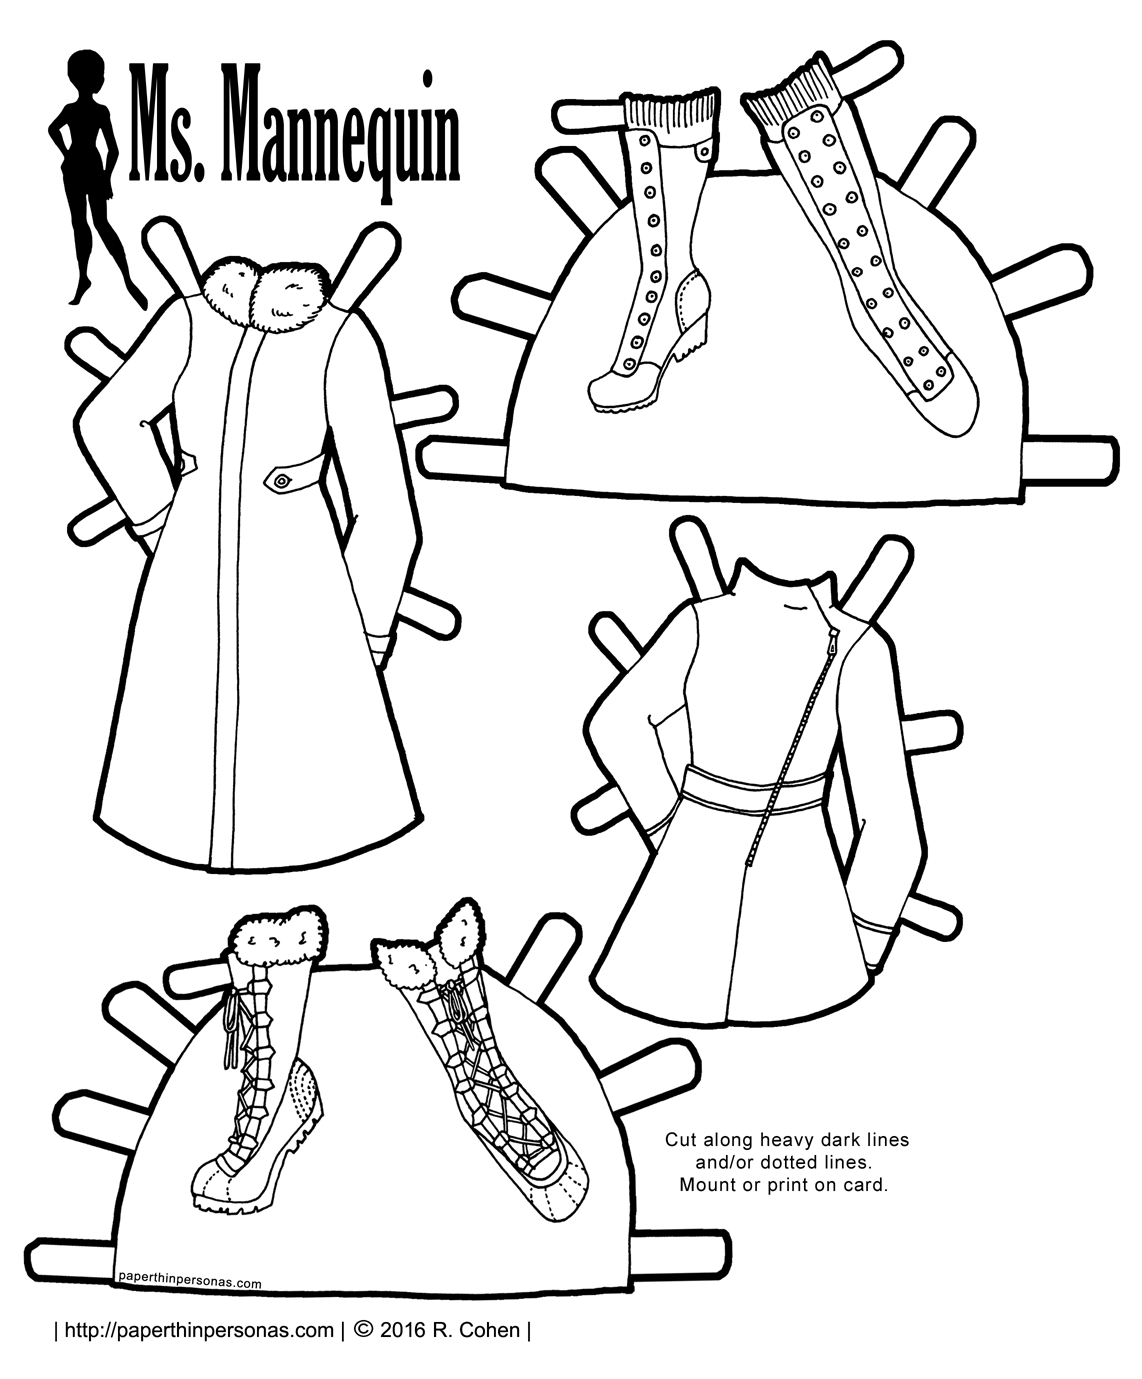 Ms Mannequin Coats and Boots for Fashionable Winter Wear  Paper